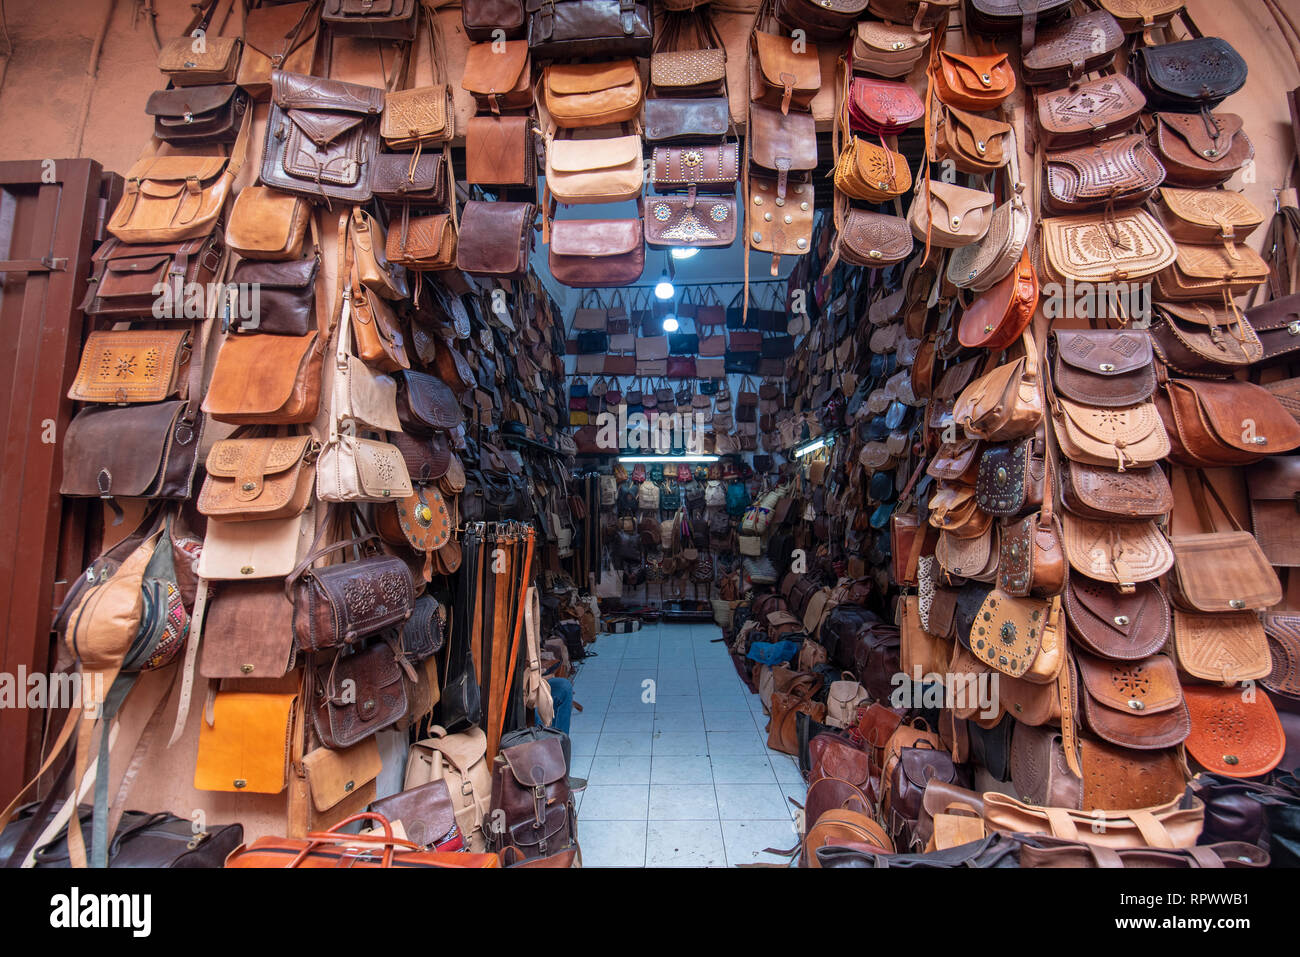 Bags, purses, hats and other products of the Moroccan Handmade leather. Camel, cow and other animal leather. Traditional market - souq. Marrakech - Stock Image